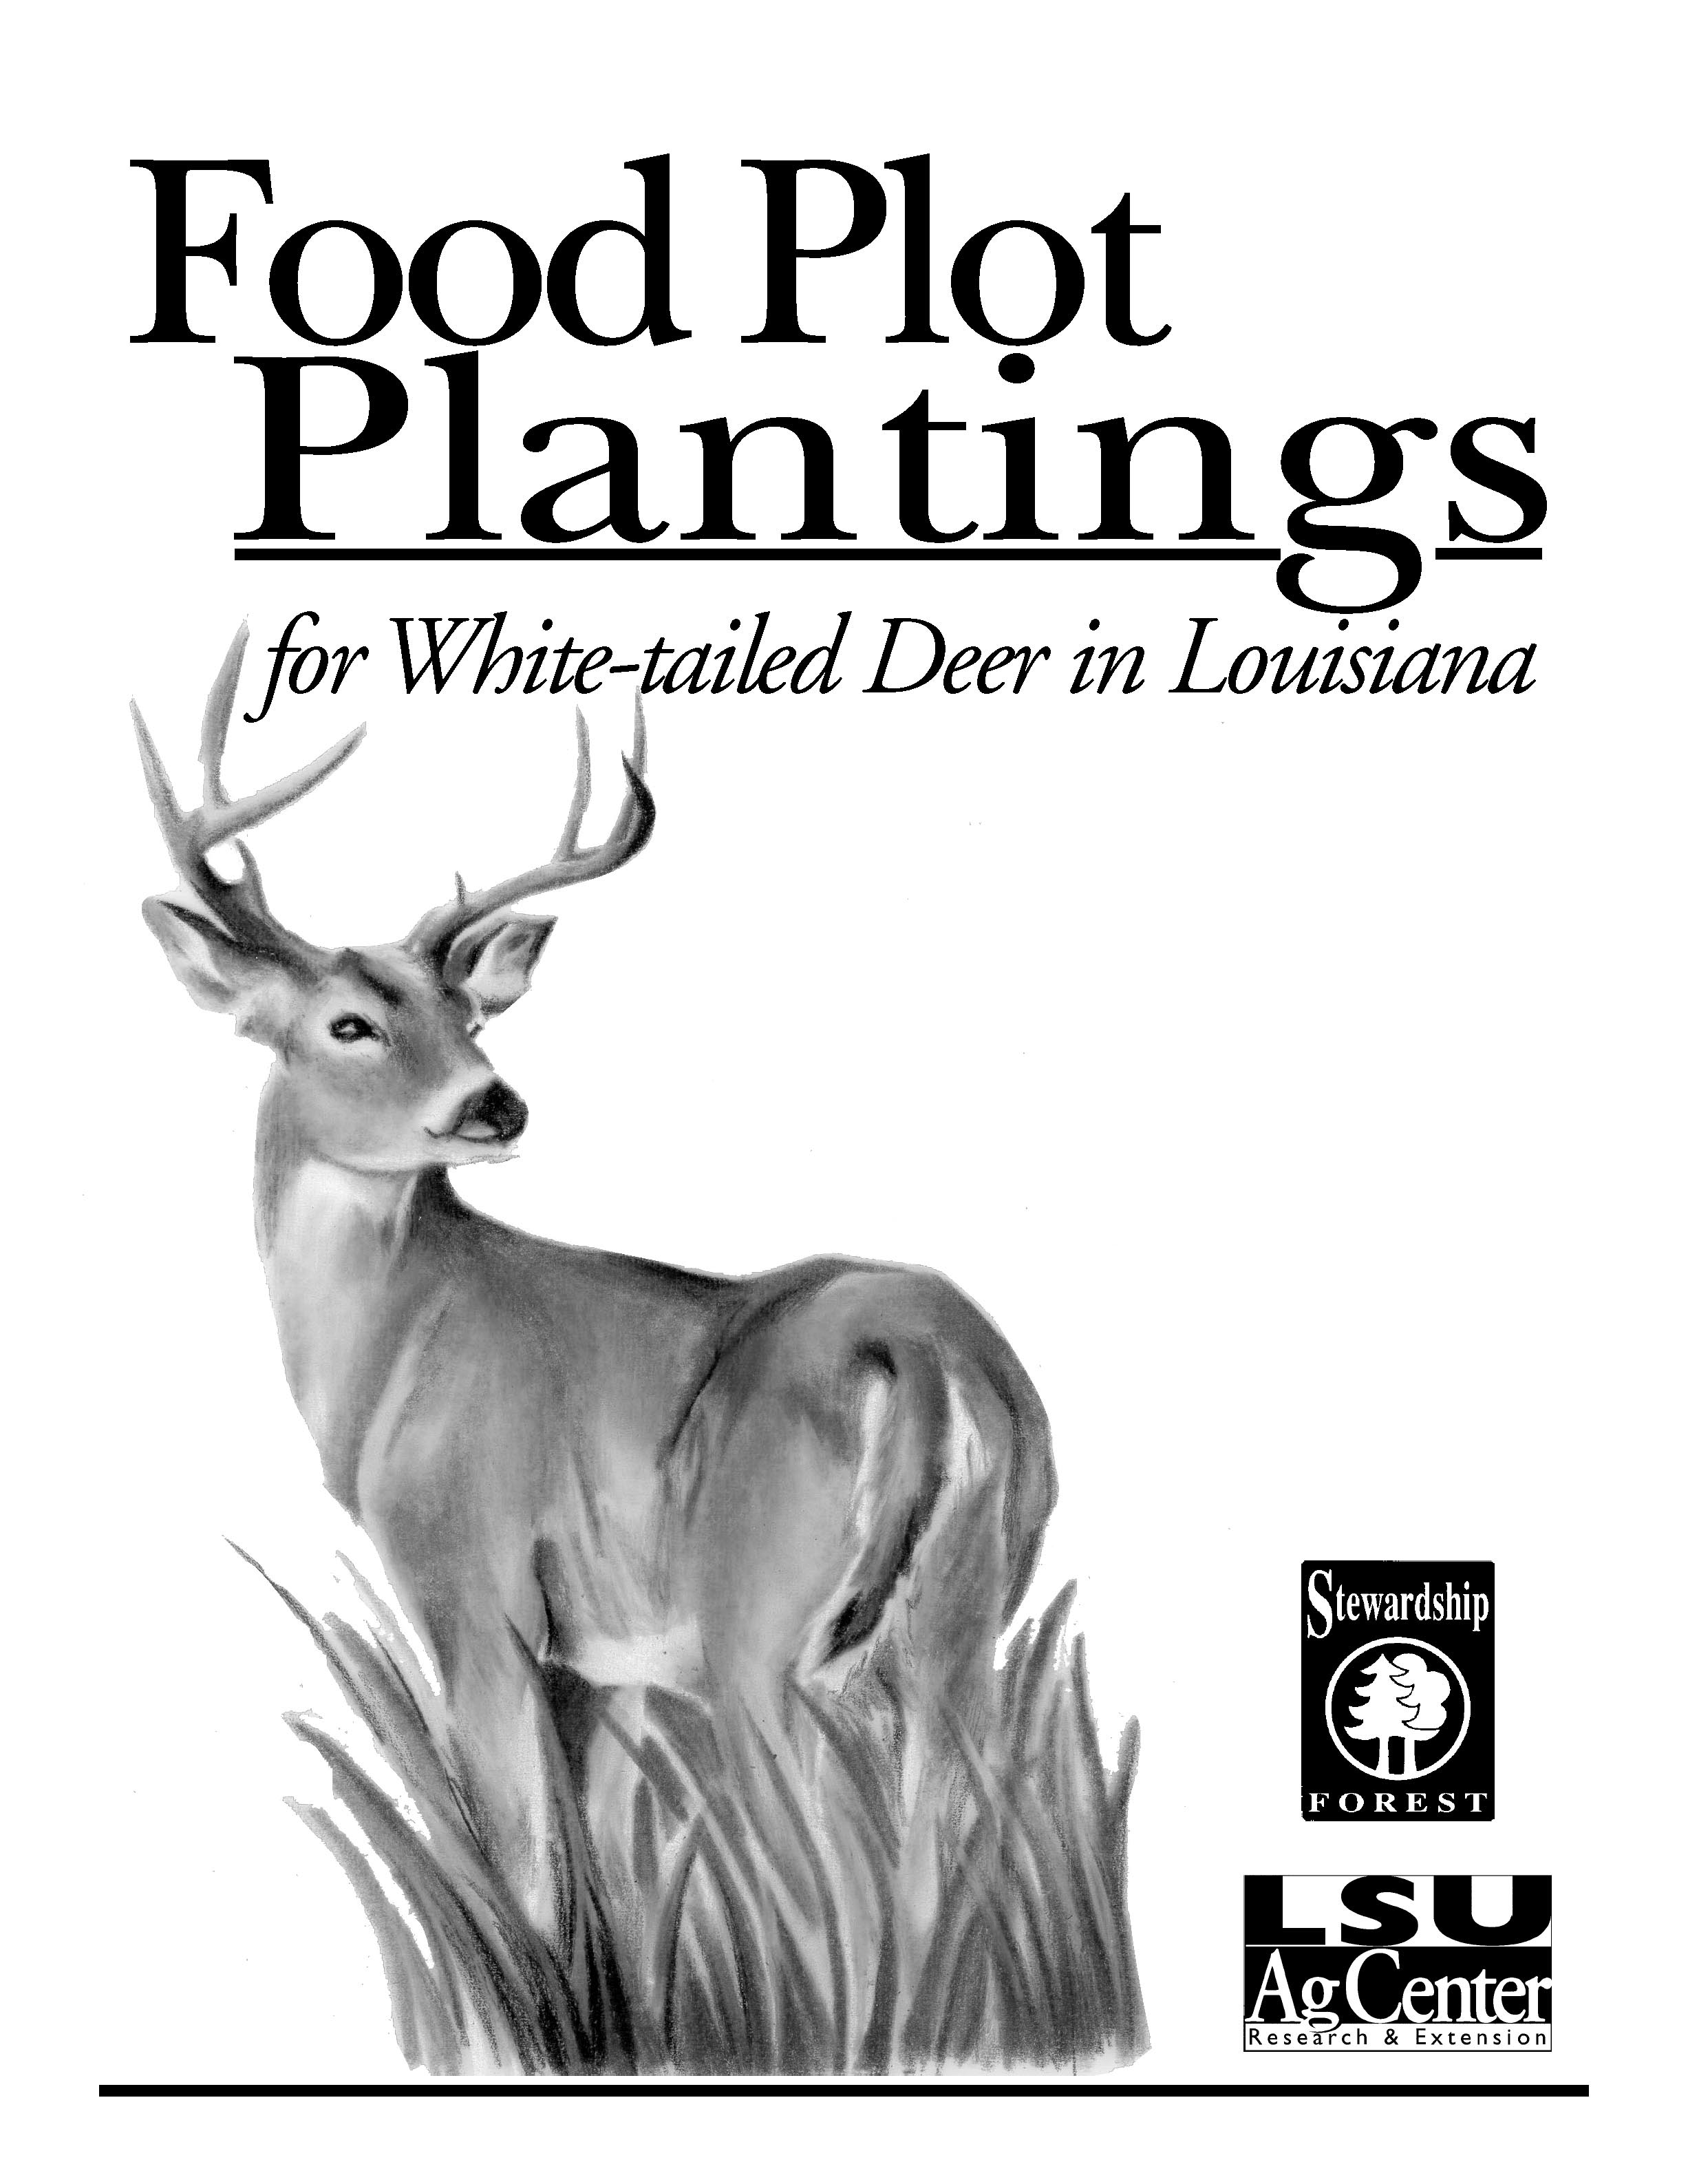 Food Plot Plantings for White-tailed Deer in Louisiana